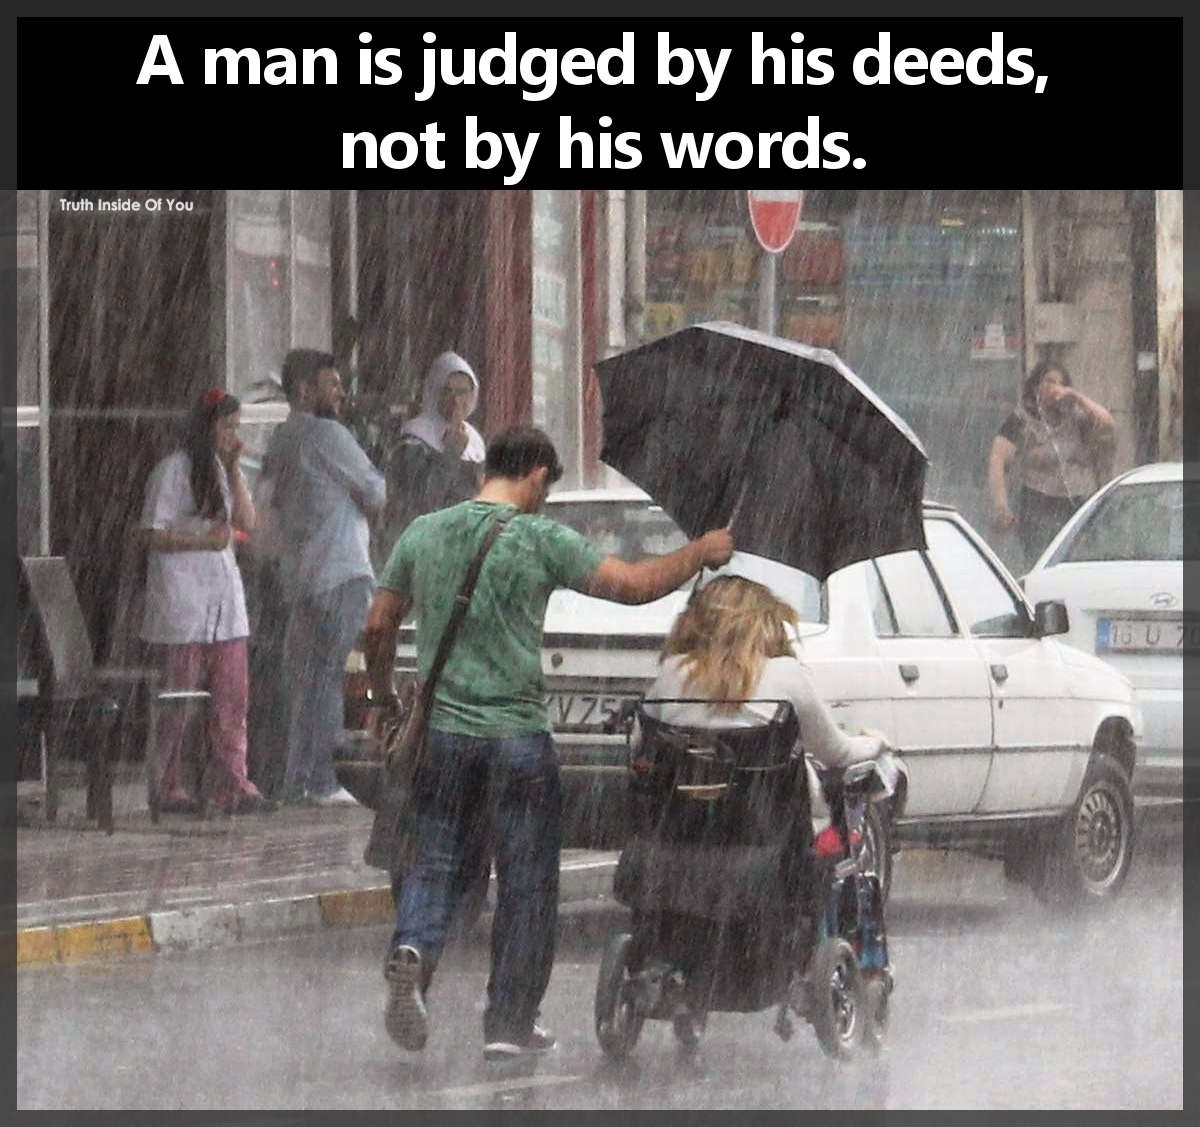 A man is judged by his deeds, not by his words.